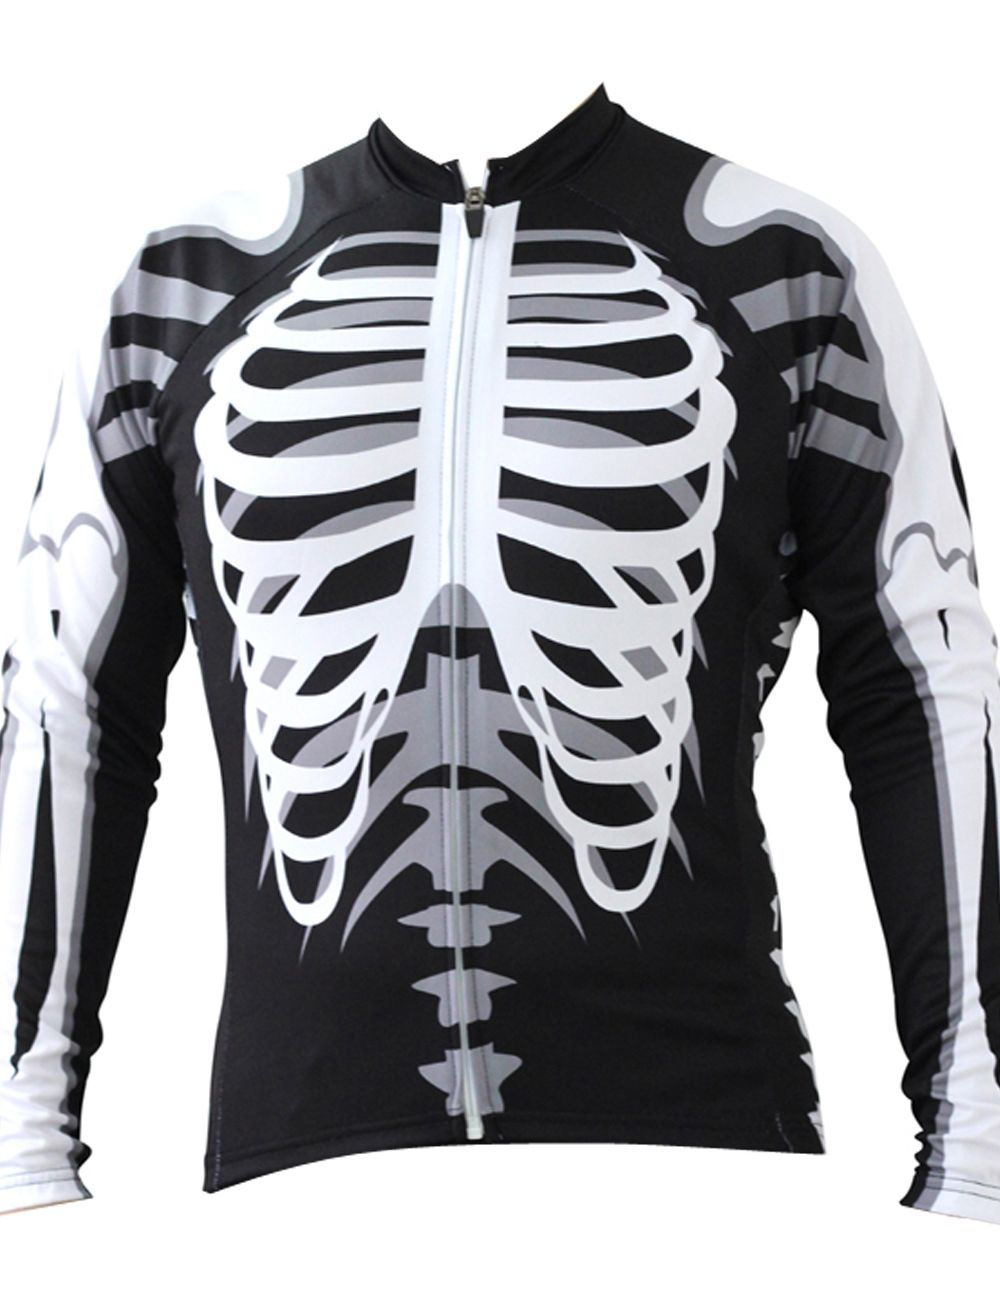 Skeleton Alien SportsWear Mens Long Sleeve Cycling Jersey Cycling Clothing  Bike Shirt Size 2XS To 6XL-in Cycling Jerseys from Sports   Entertainment  on ... aab63e715